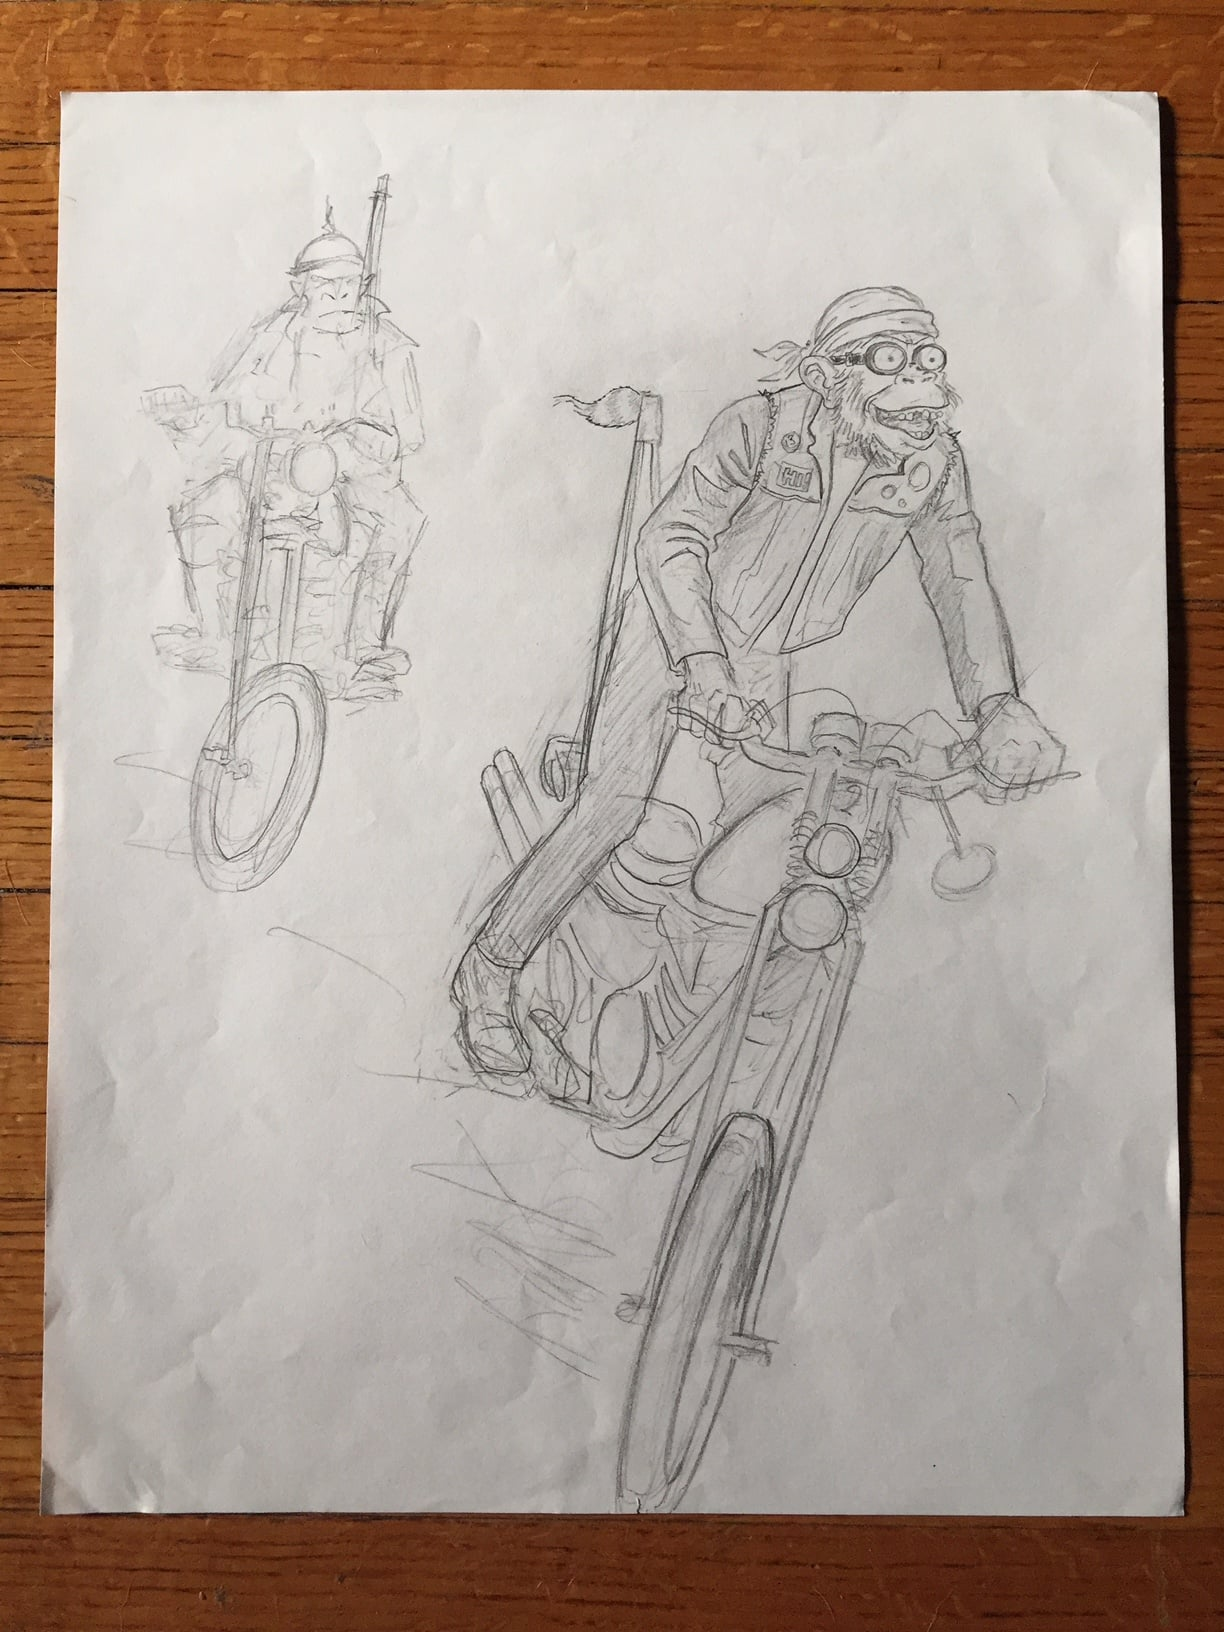 Early process sketch. Love the goggles.